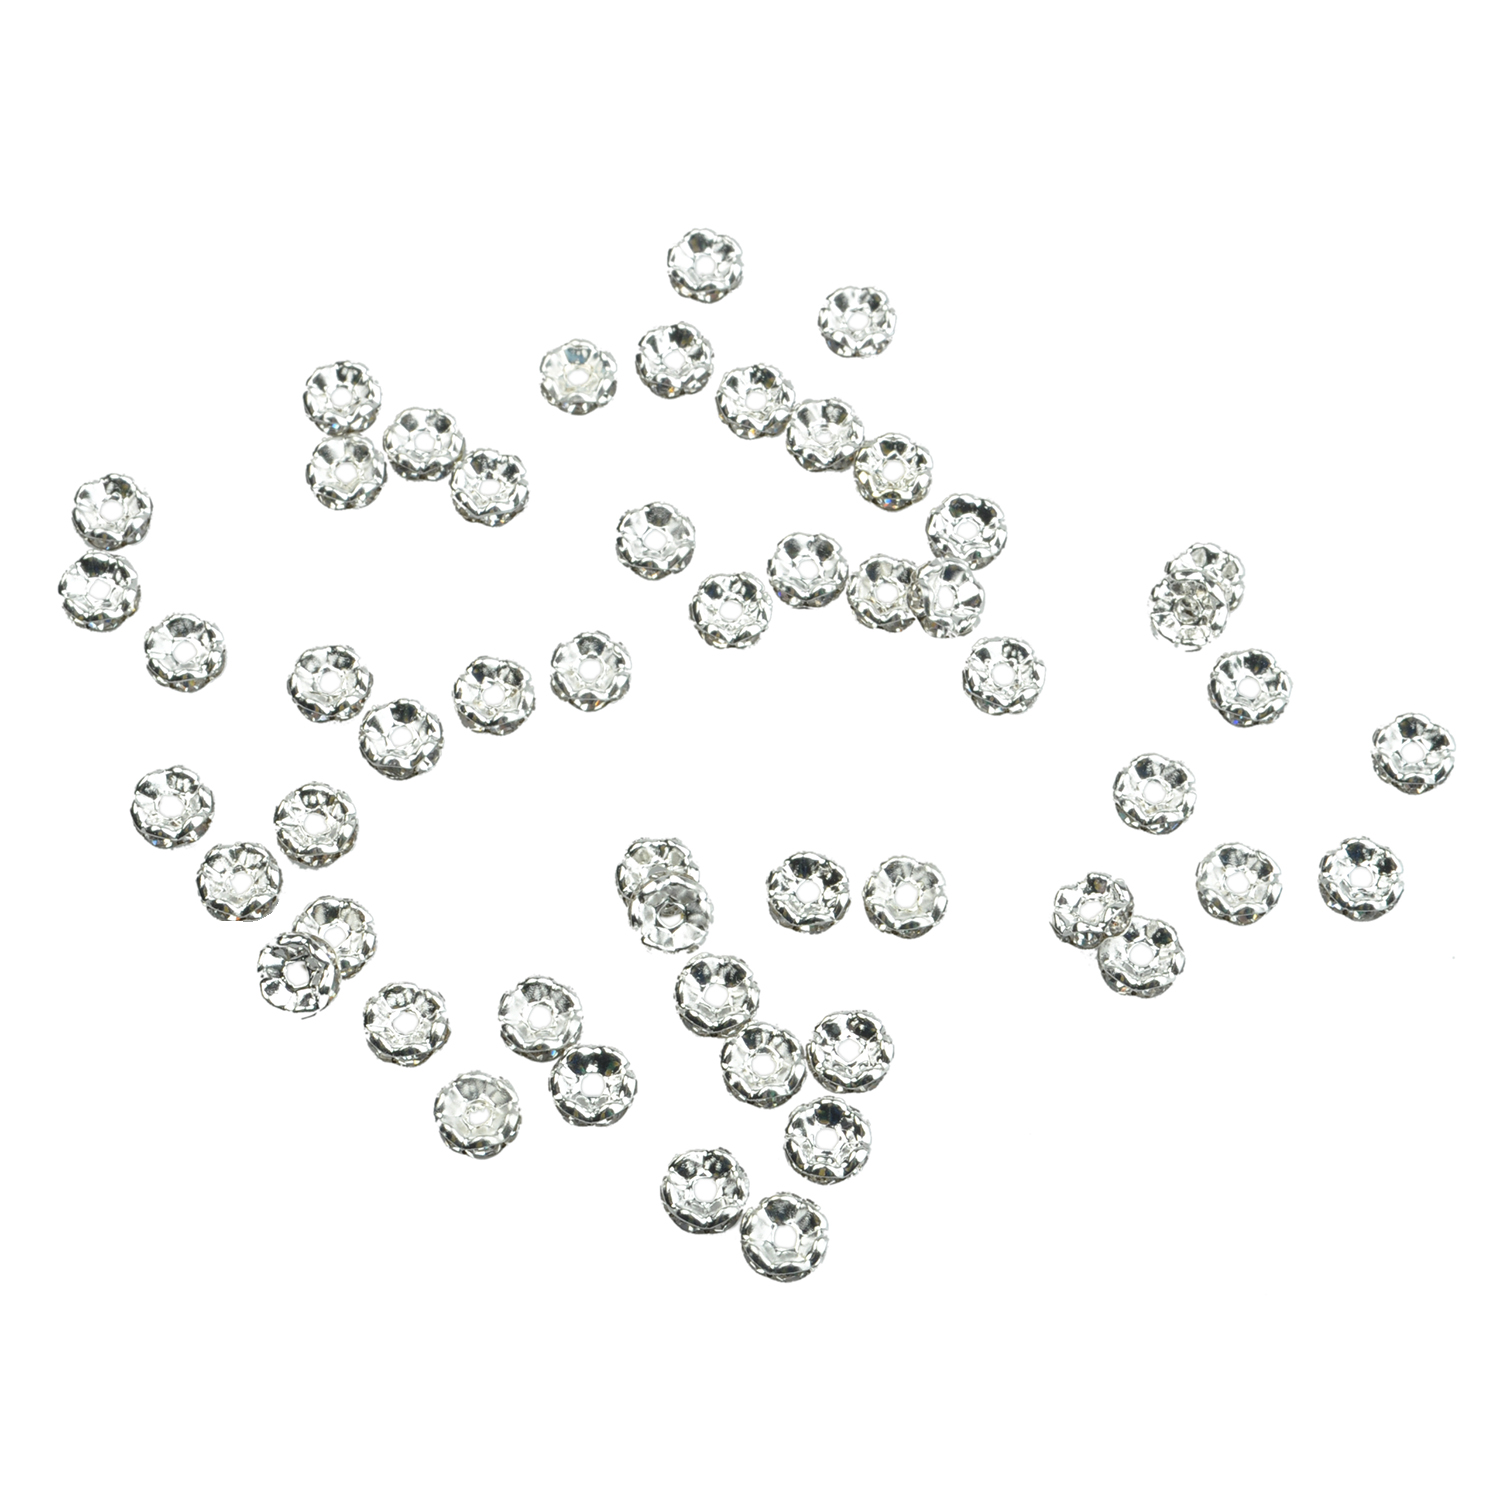 50pcs 6mm Silver Flower Rhinestone Rondelle Bead Spacer